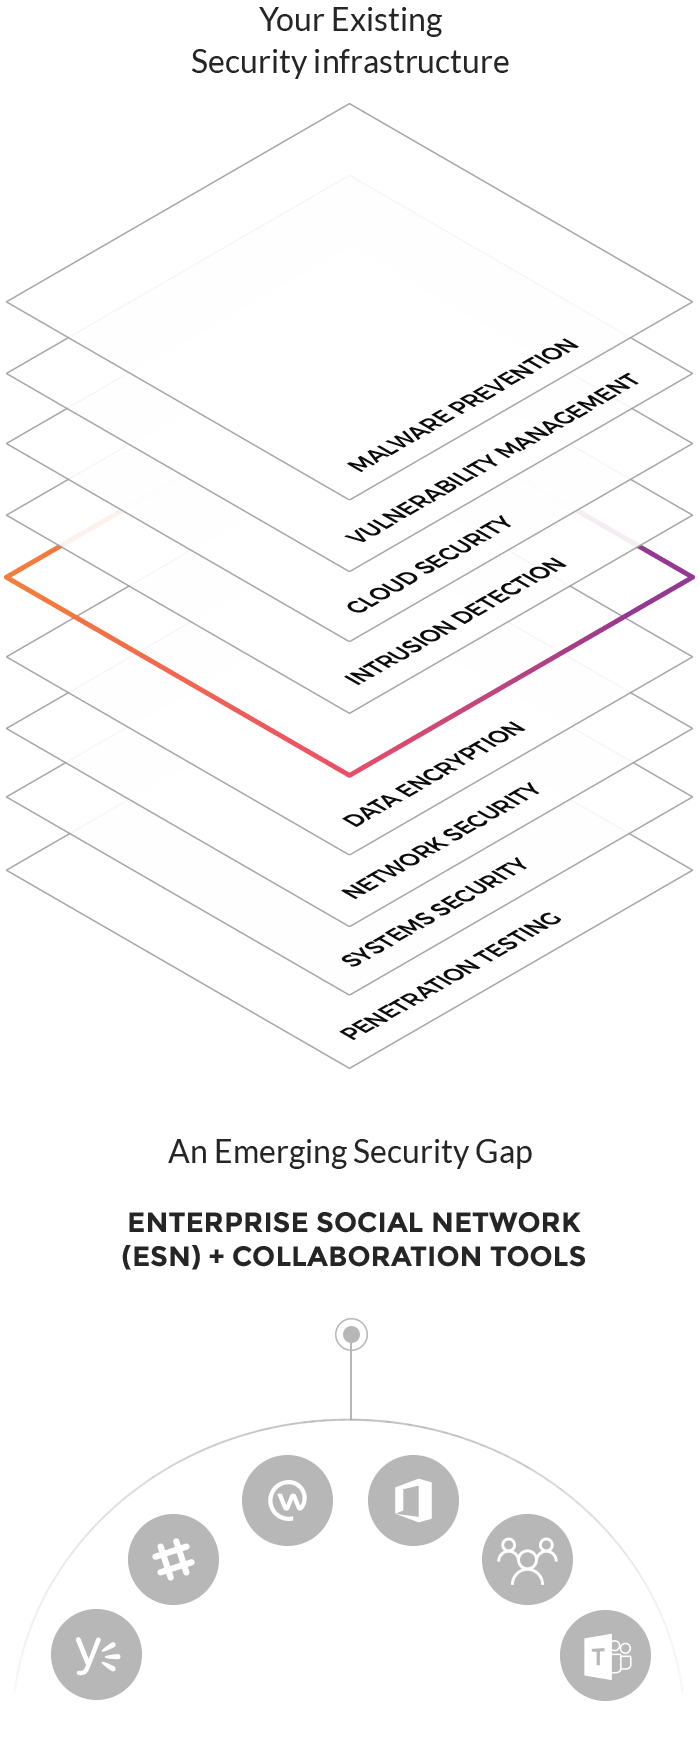 A Critical Part of Your Enterprise Security Fabric